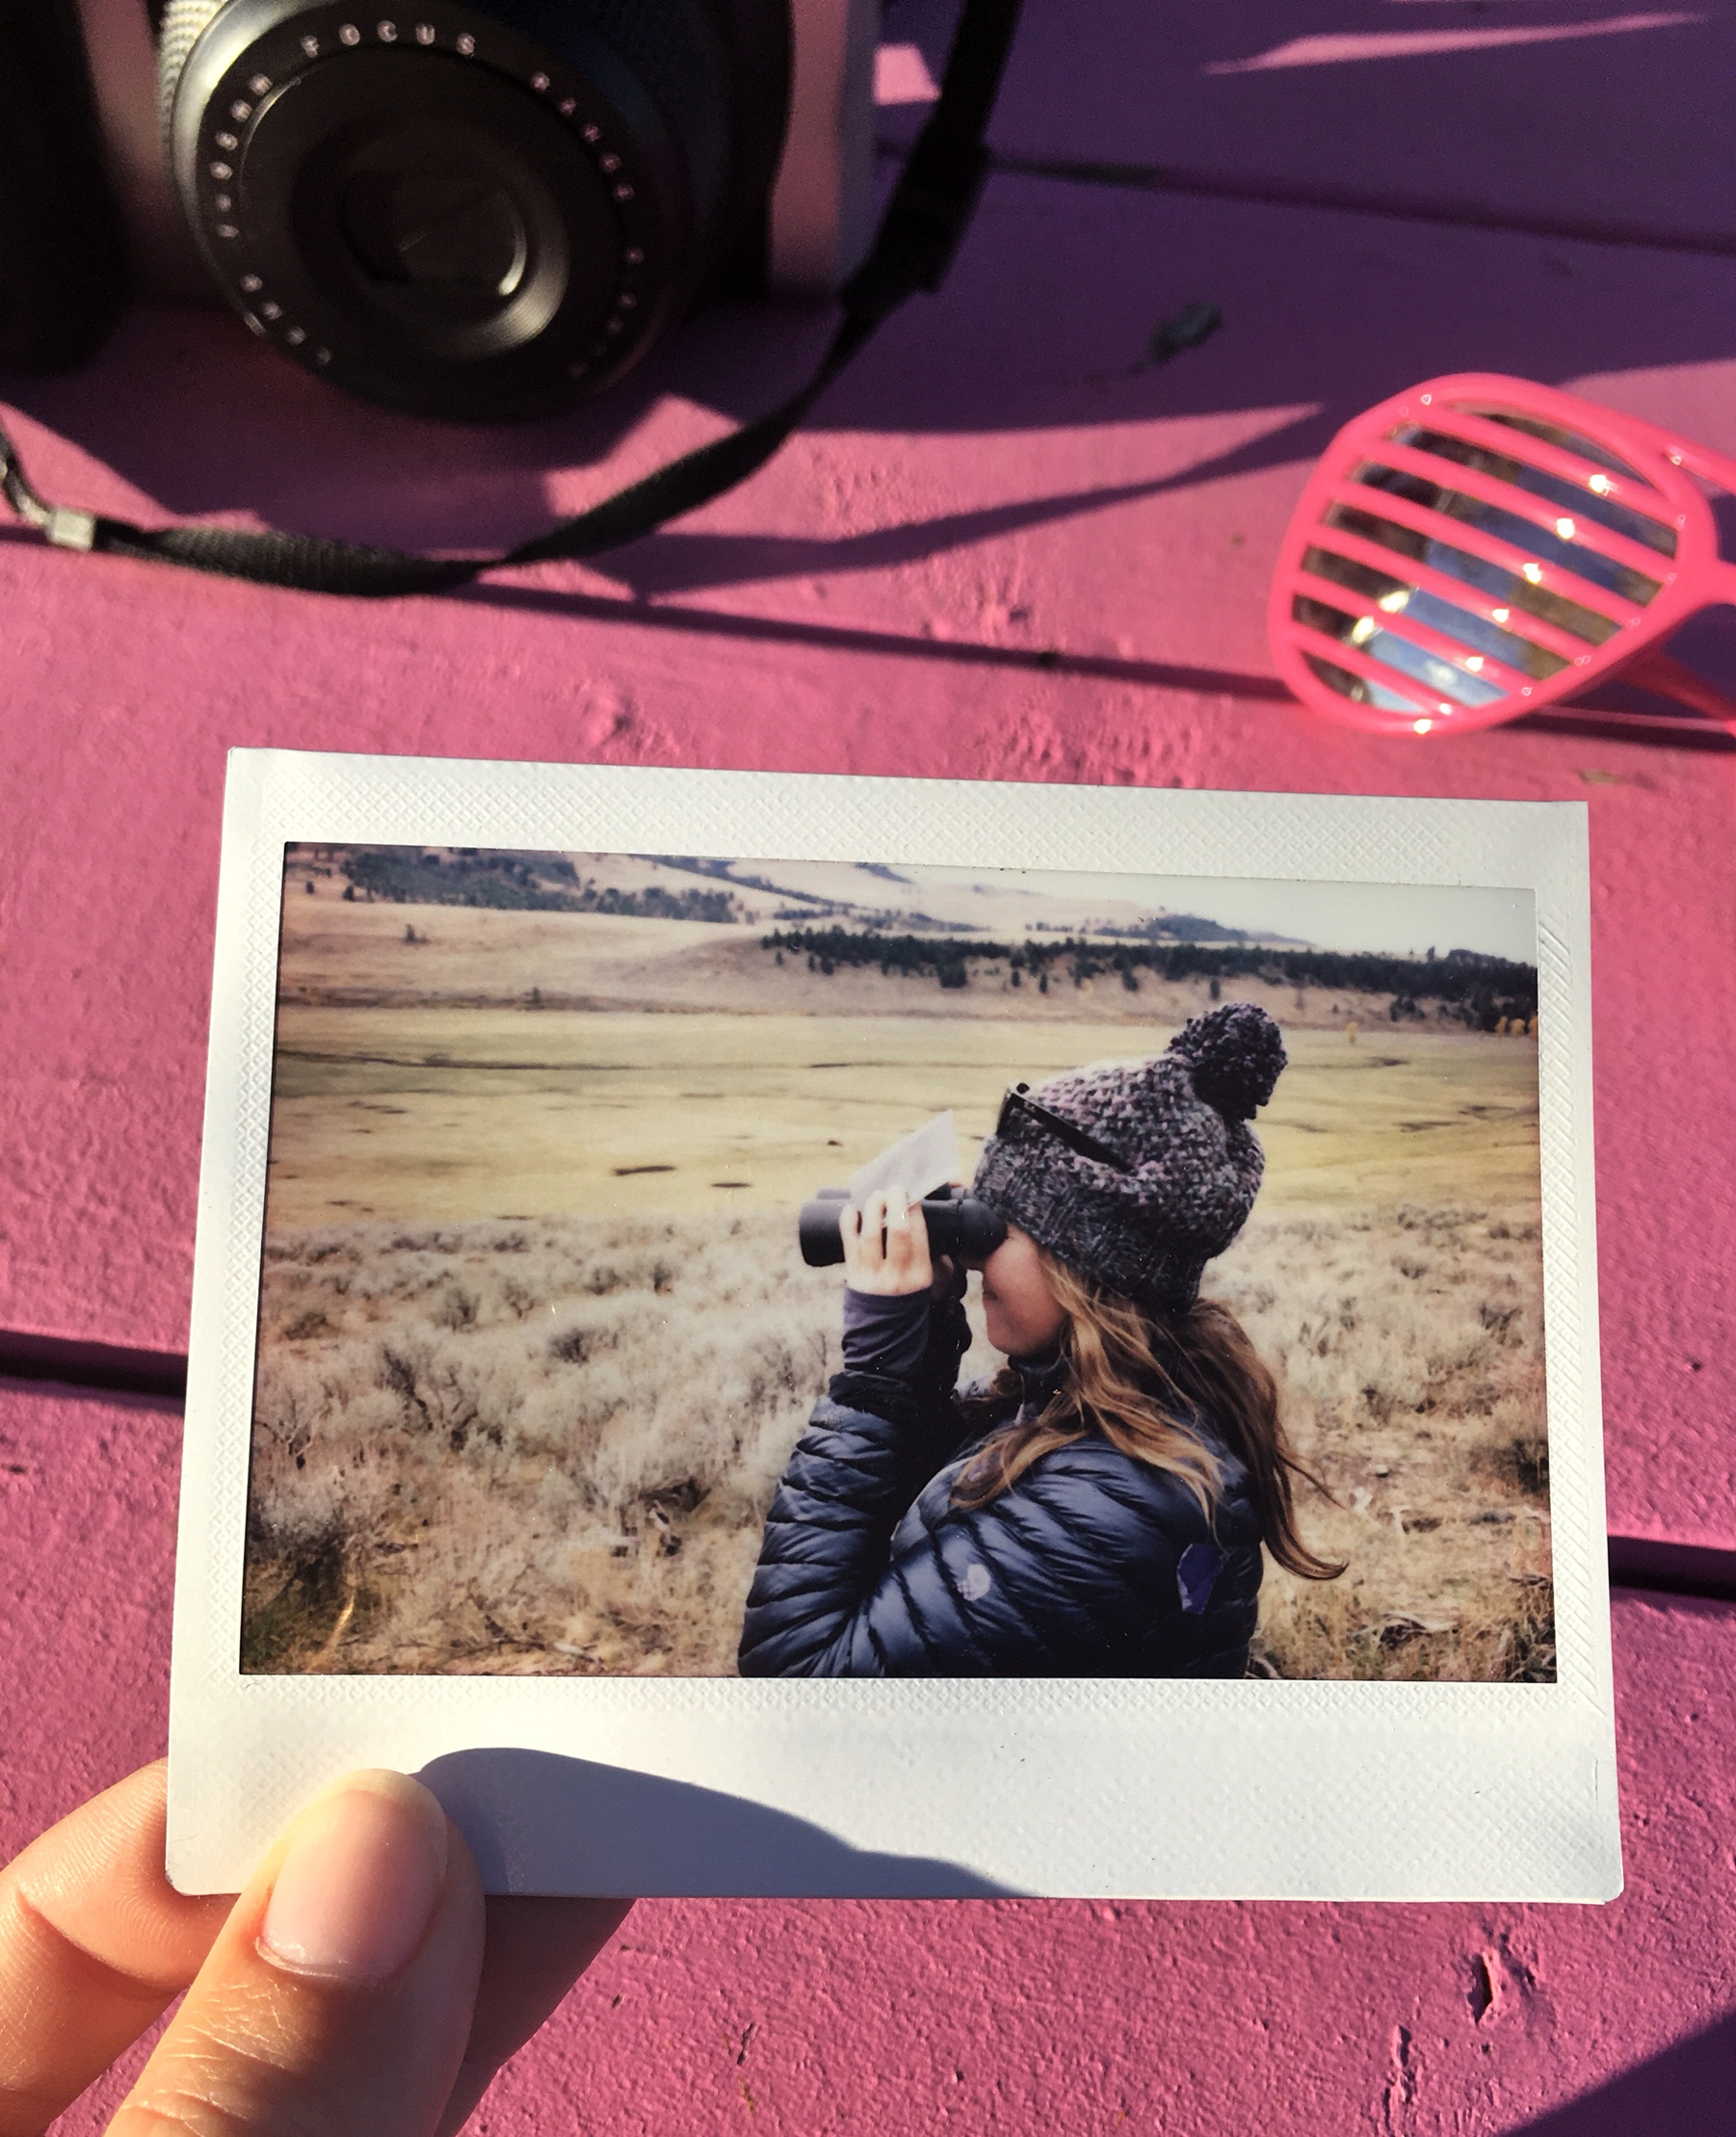 Stefanie sometimes shares her camera so her photo can be captured with Instax too. <3